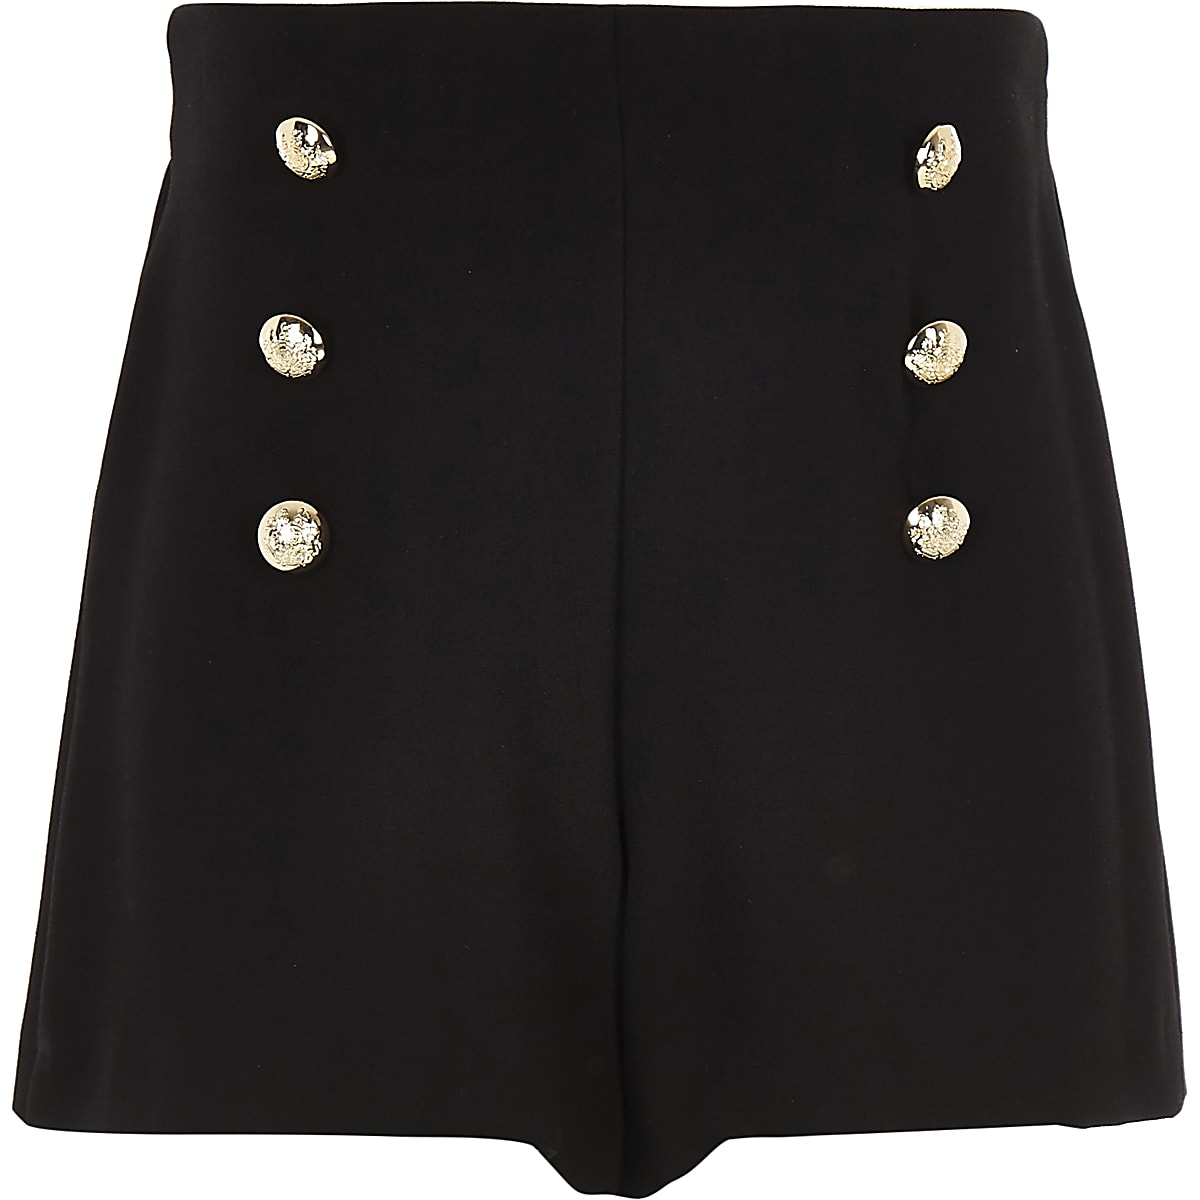 Girls black button front shorts